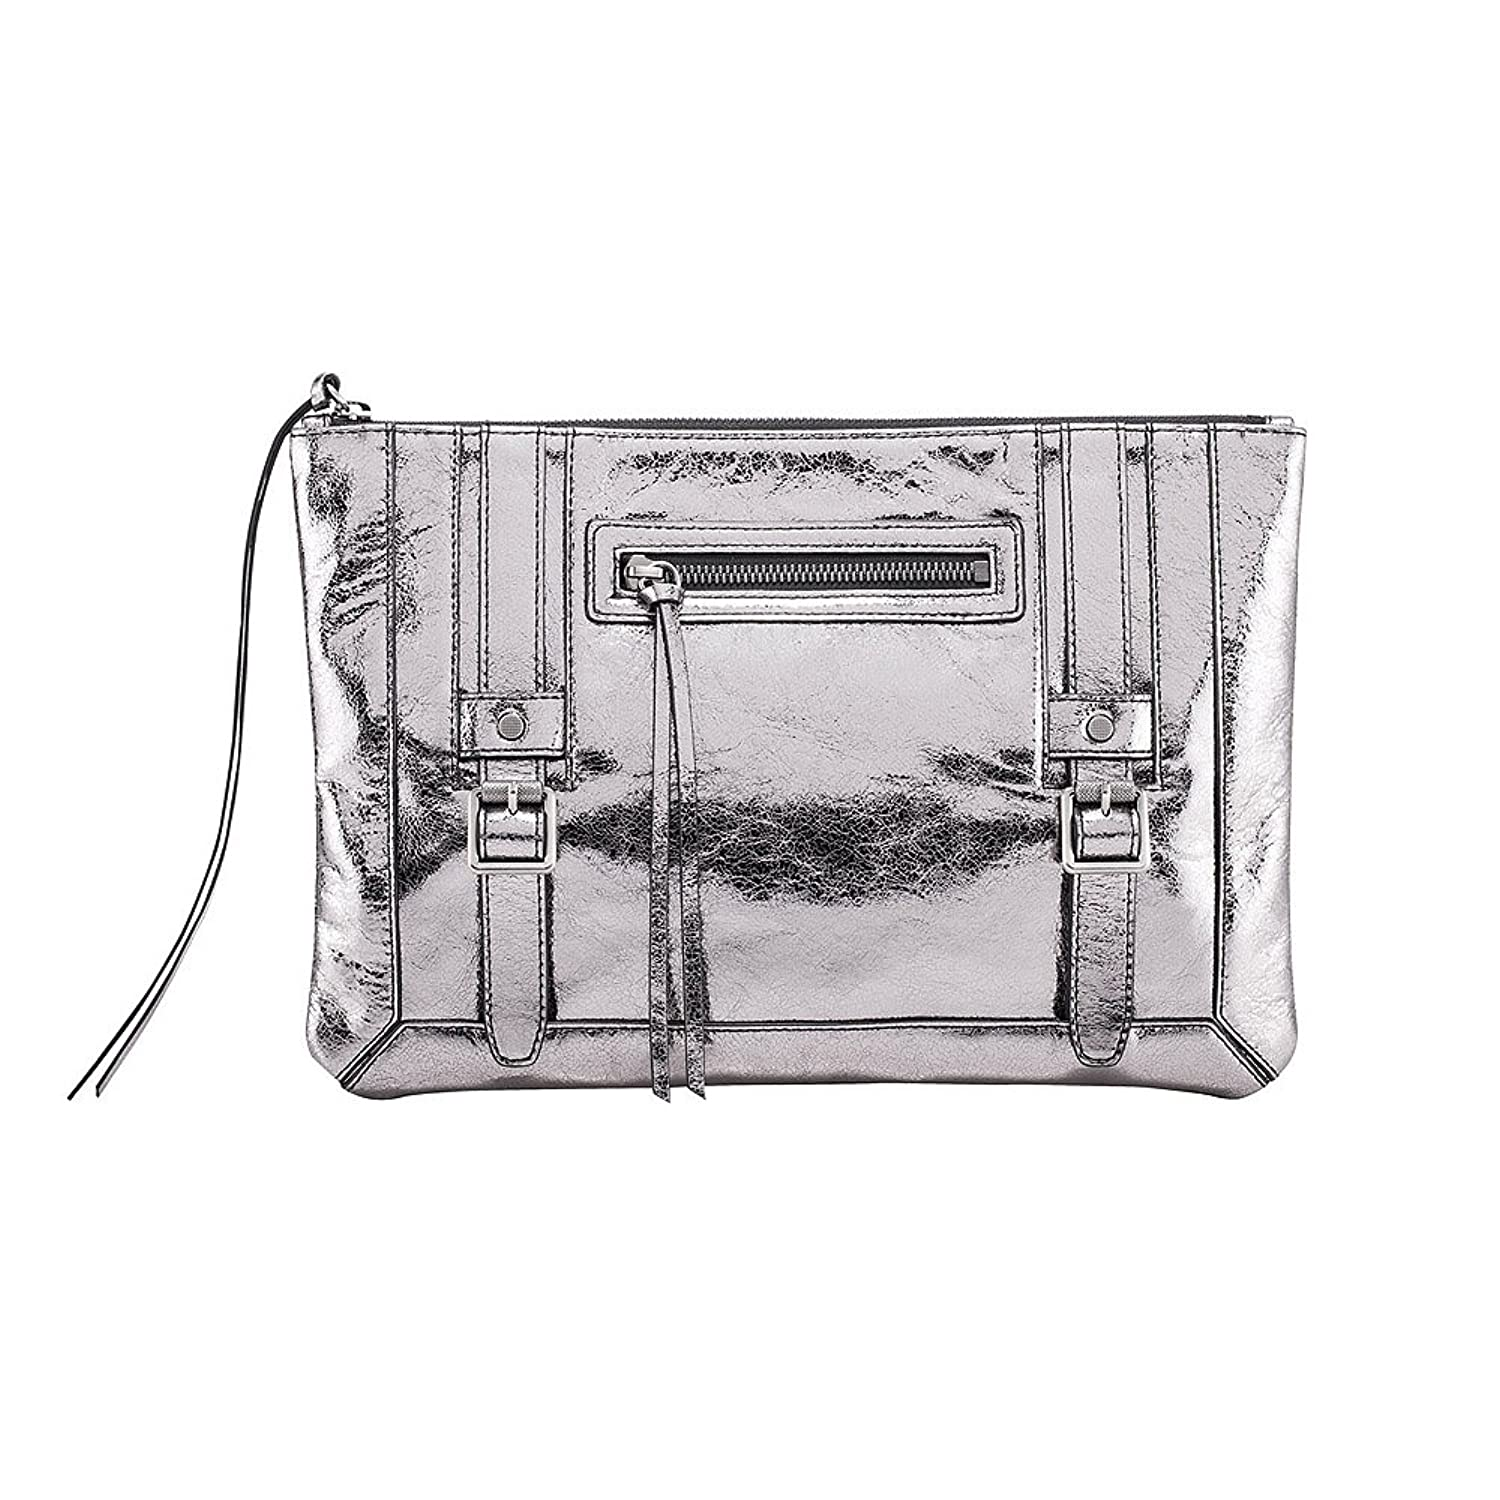 MADGOAT Two-buckled Genuine Leather Clutch Bag